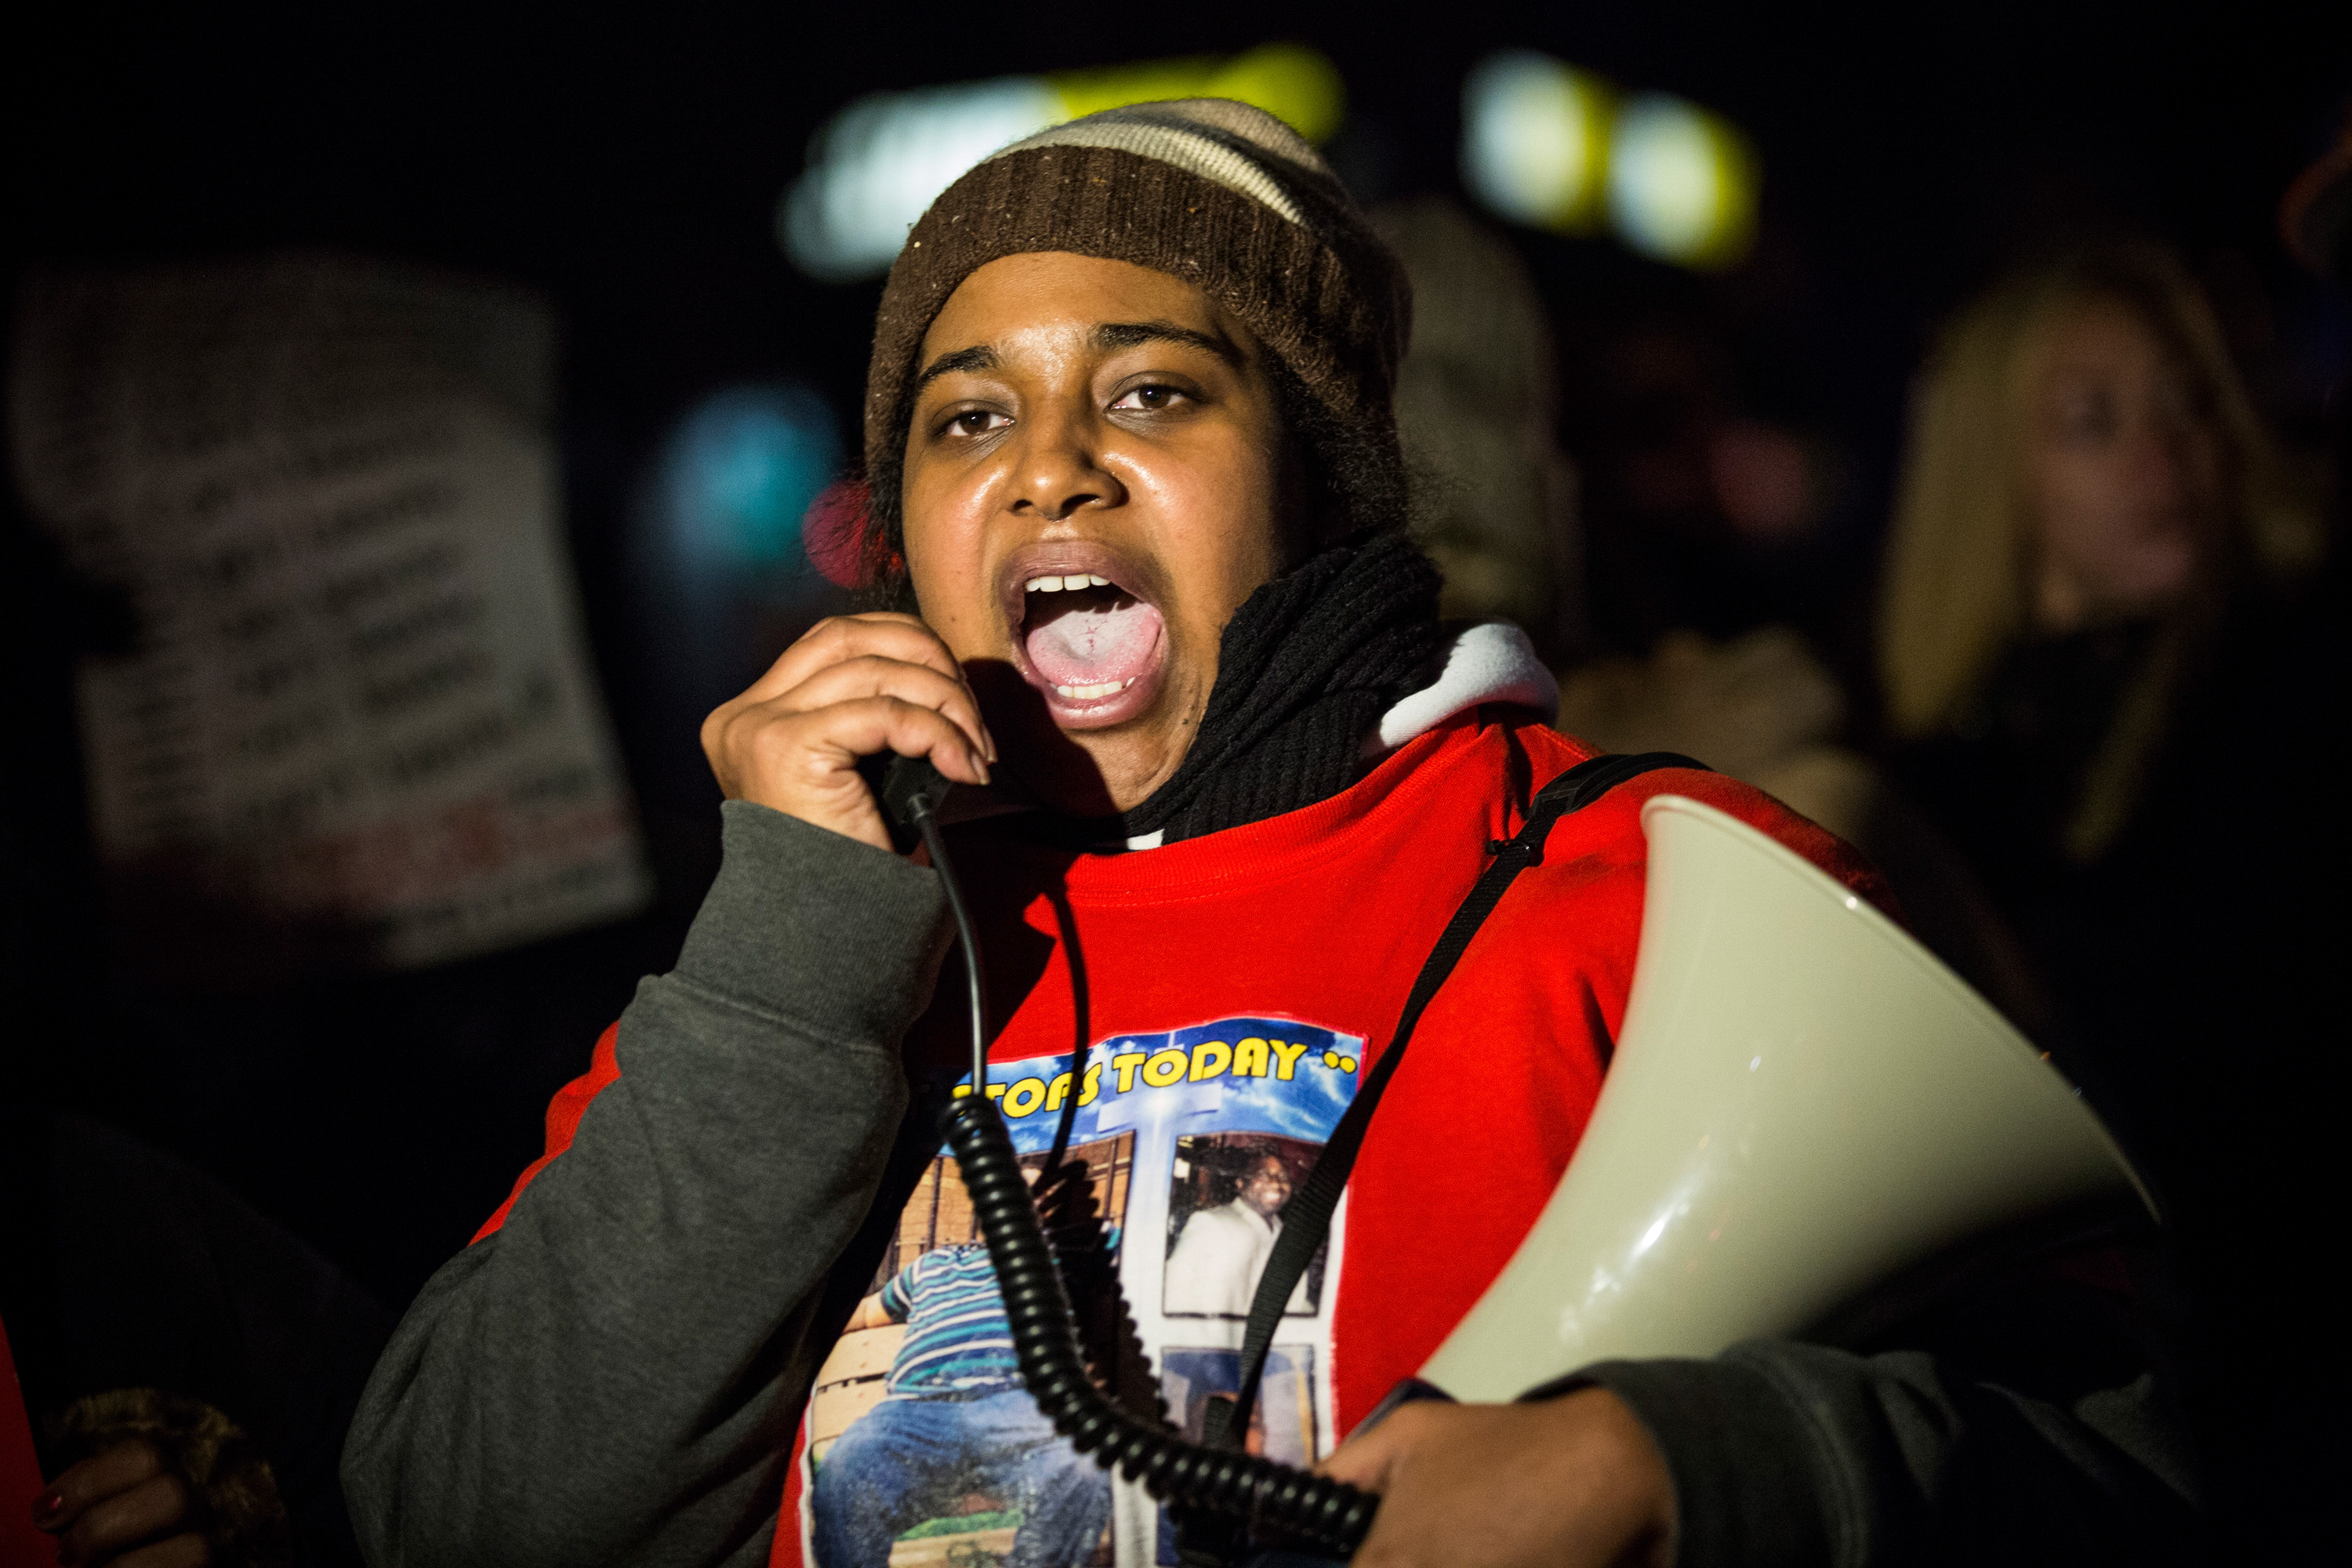 NEW YORK, NY - DEC 11, 2014:  Erica Garner, daughter of Eric Garner, leads a march of people protesting the Staten Island, New York grand jury's decision not to indict a police officer involved in the chokehold death of Eric Garner in July, on Dec. 11, 2014 in the Staten Island Neighborhood of New York City. (Photo by Andrew Burton/Getty Images)